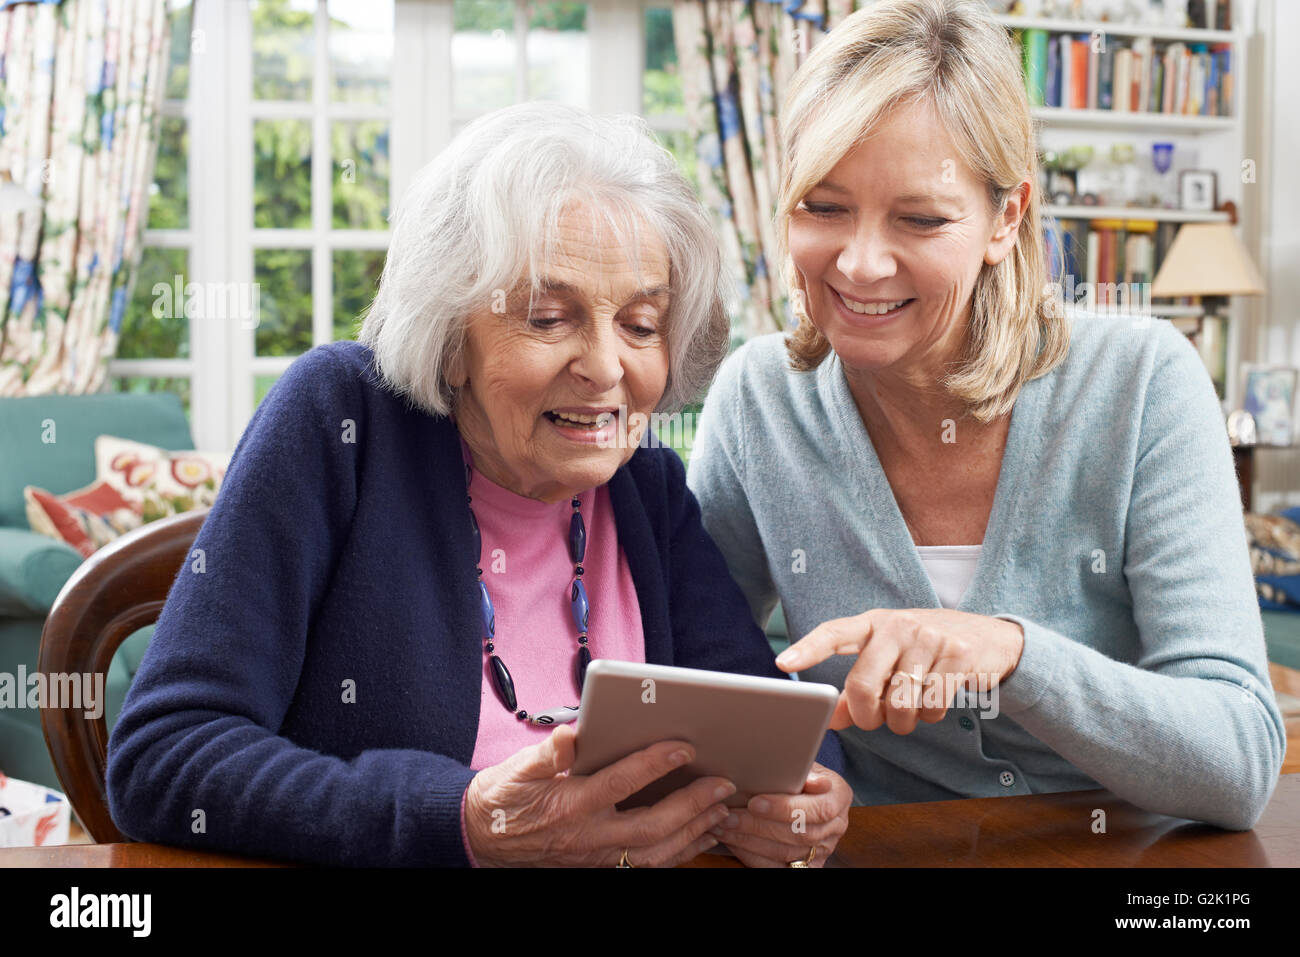 Female Neighbor Showing Senior Woman How To Use Digital Tablet Stock Photo